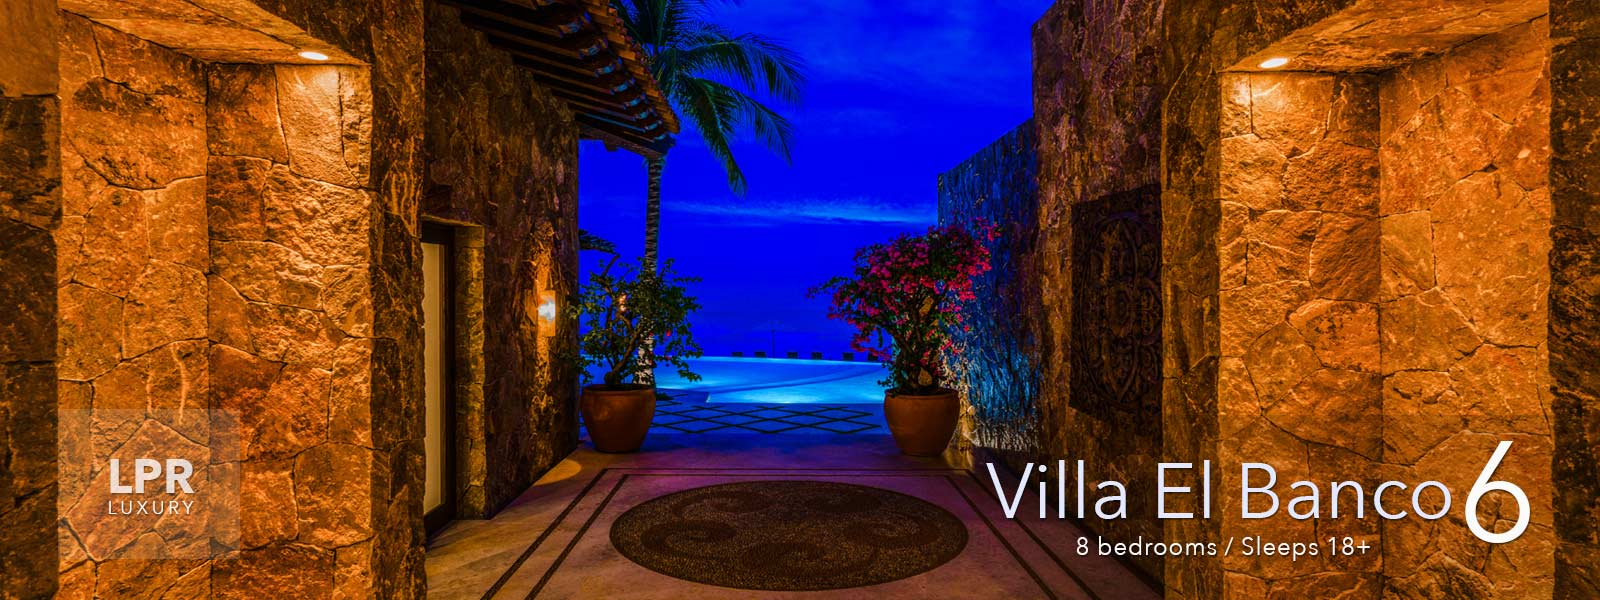 Villa El Banco 6 - Luxury Punta de Mita Real Estate and Vacation Rentals Villa